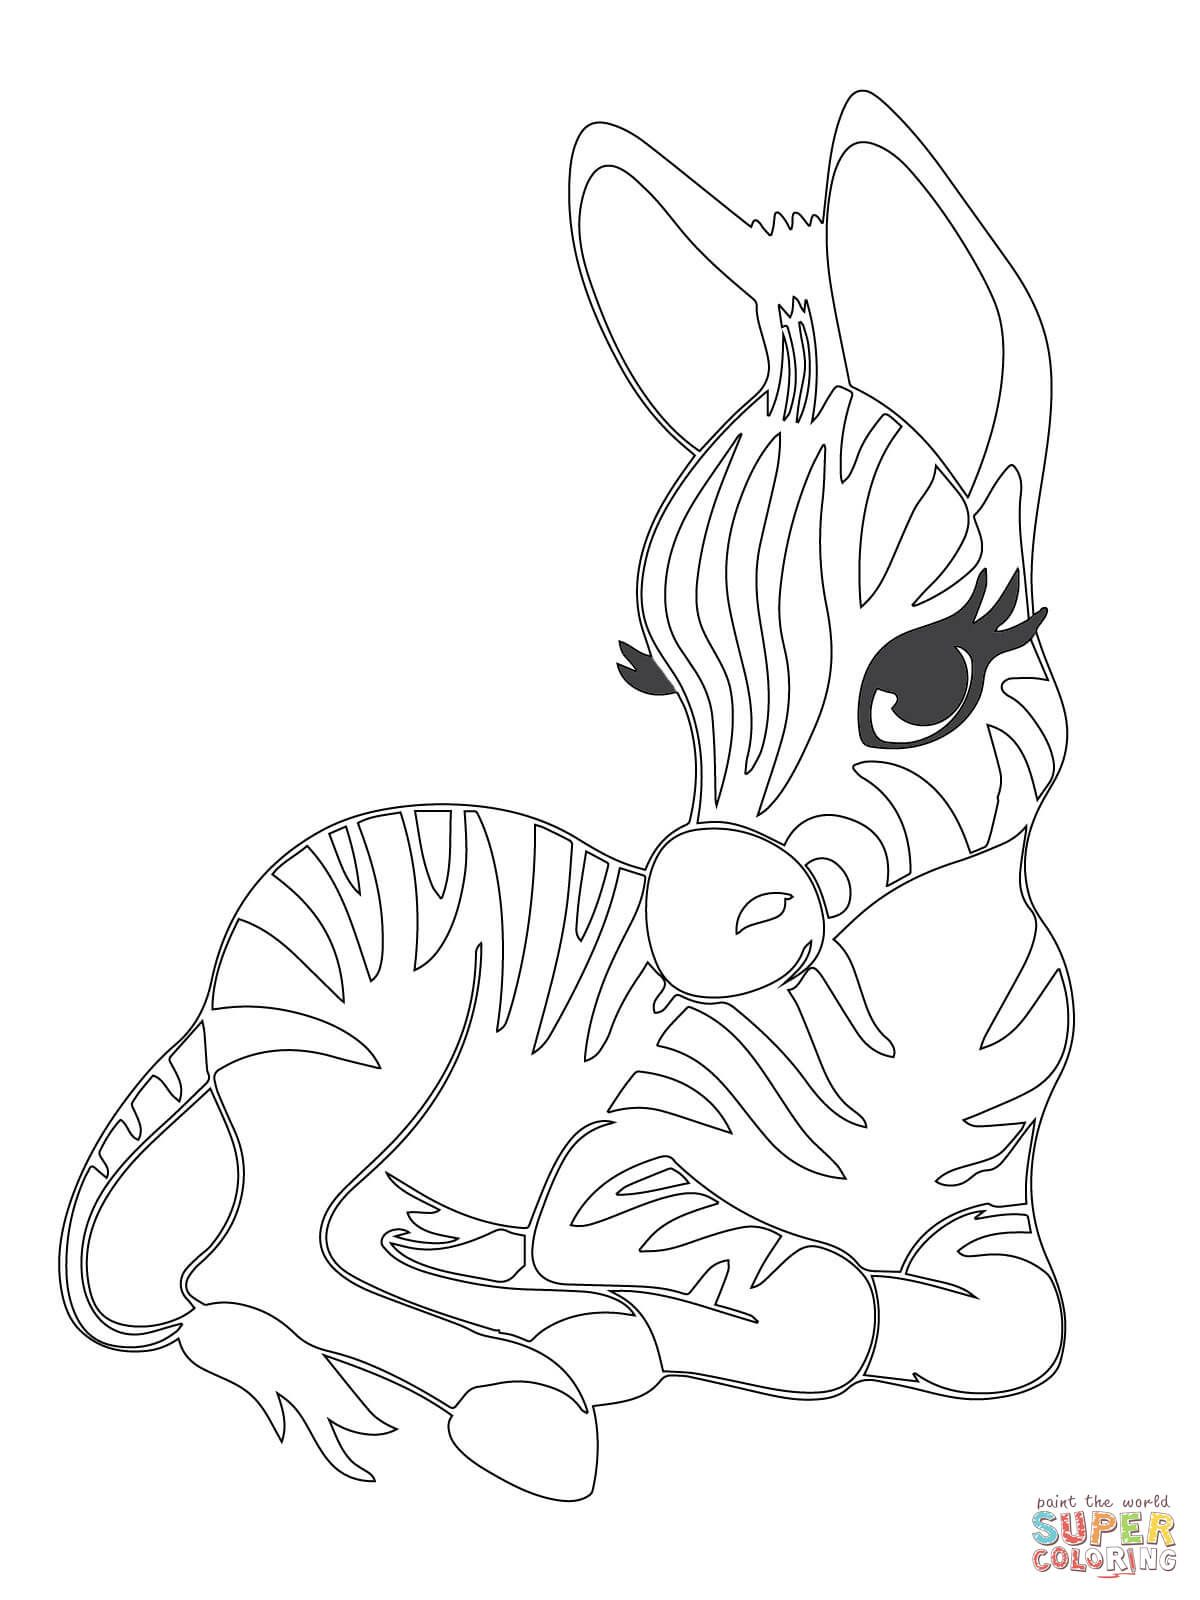 Cute Baby Zebra Coloring Page Free Printable Coloring Pages Zebra Coloring Pages Animal Coloring Books Giraffe Coloring Pages